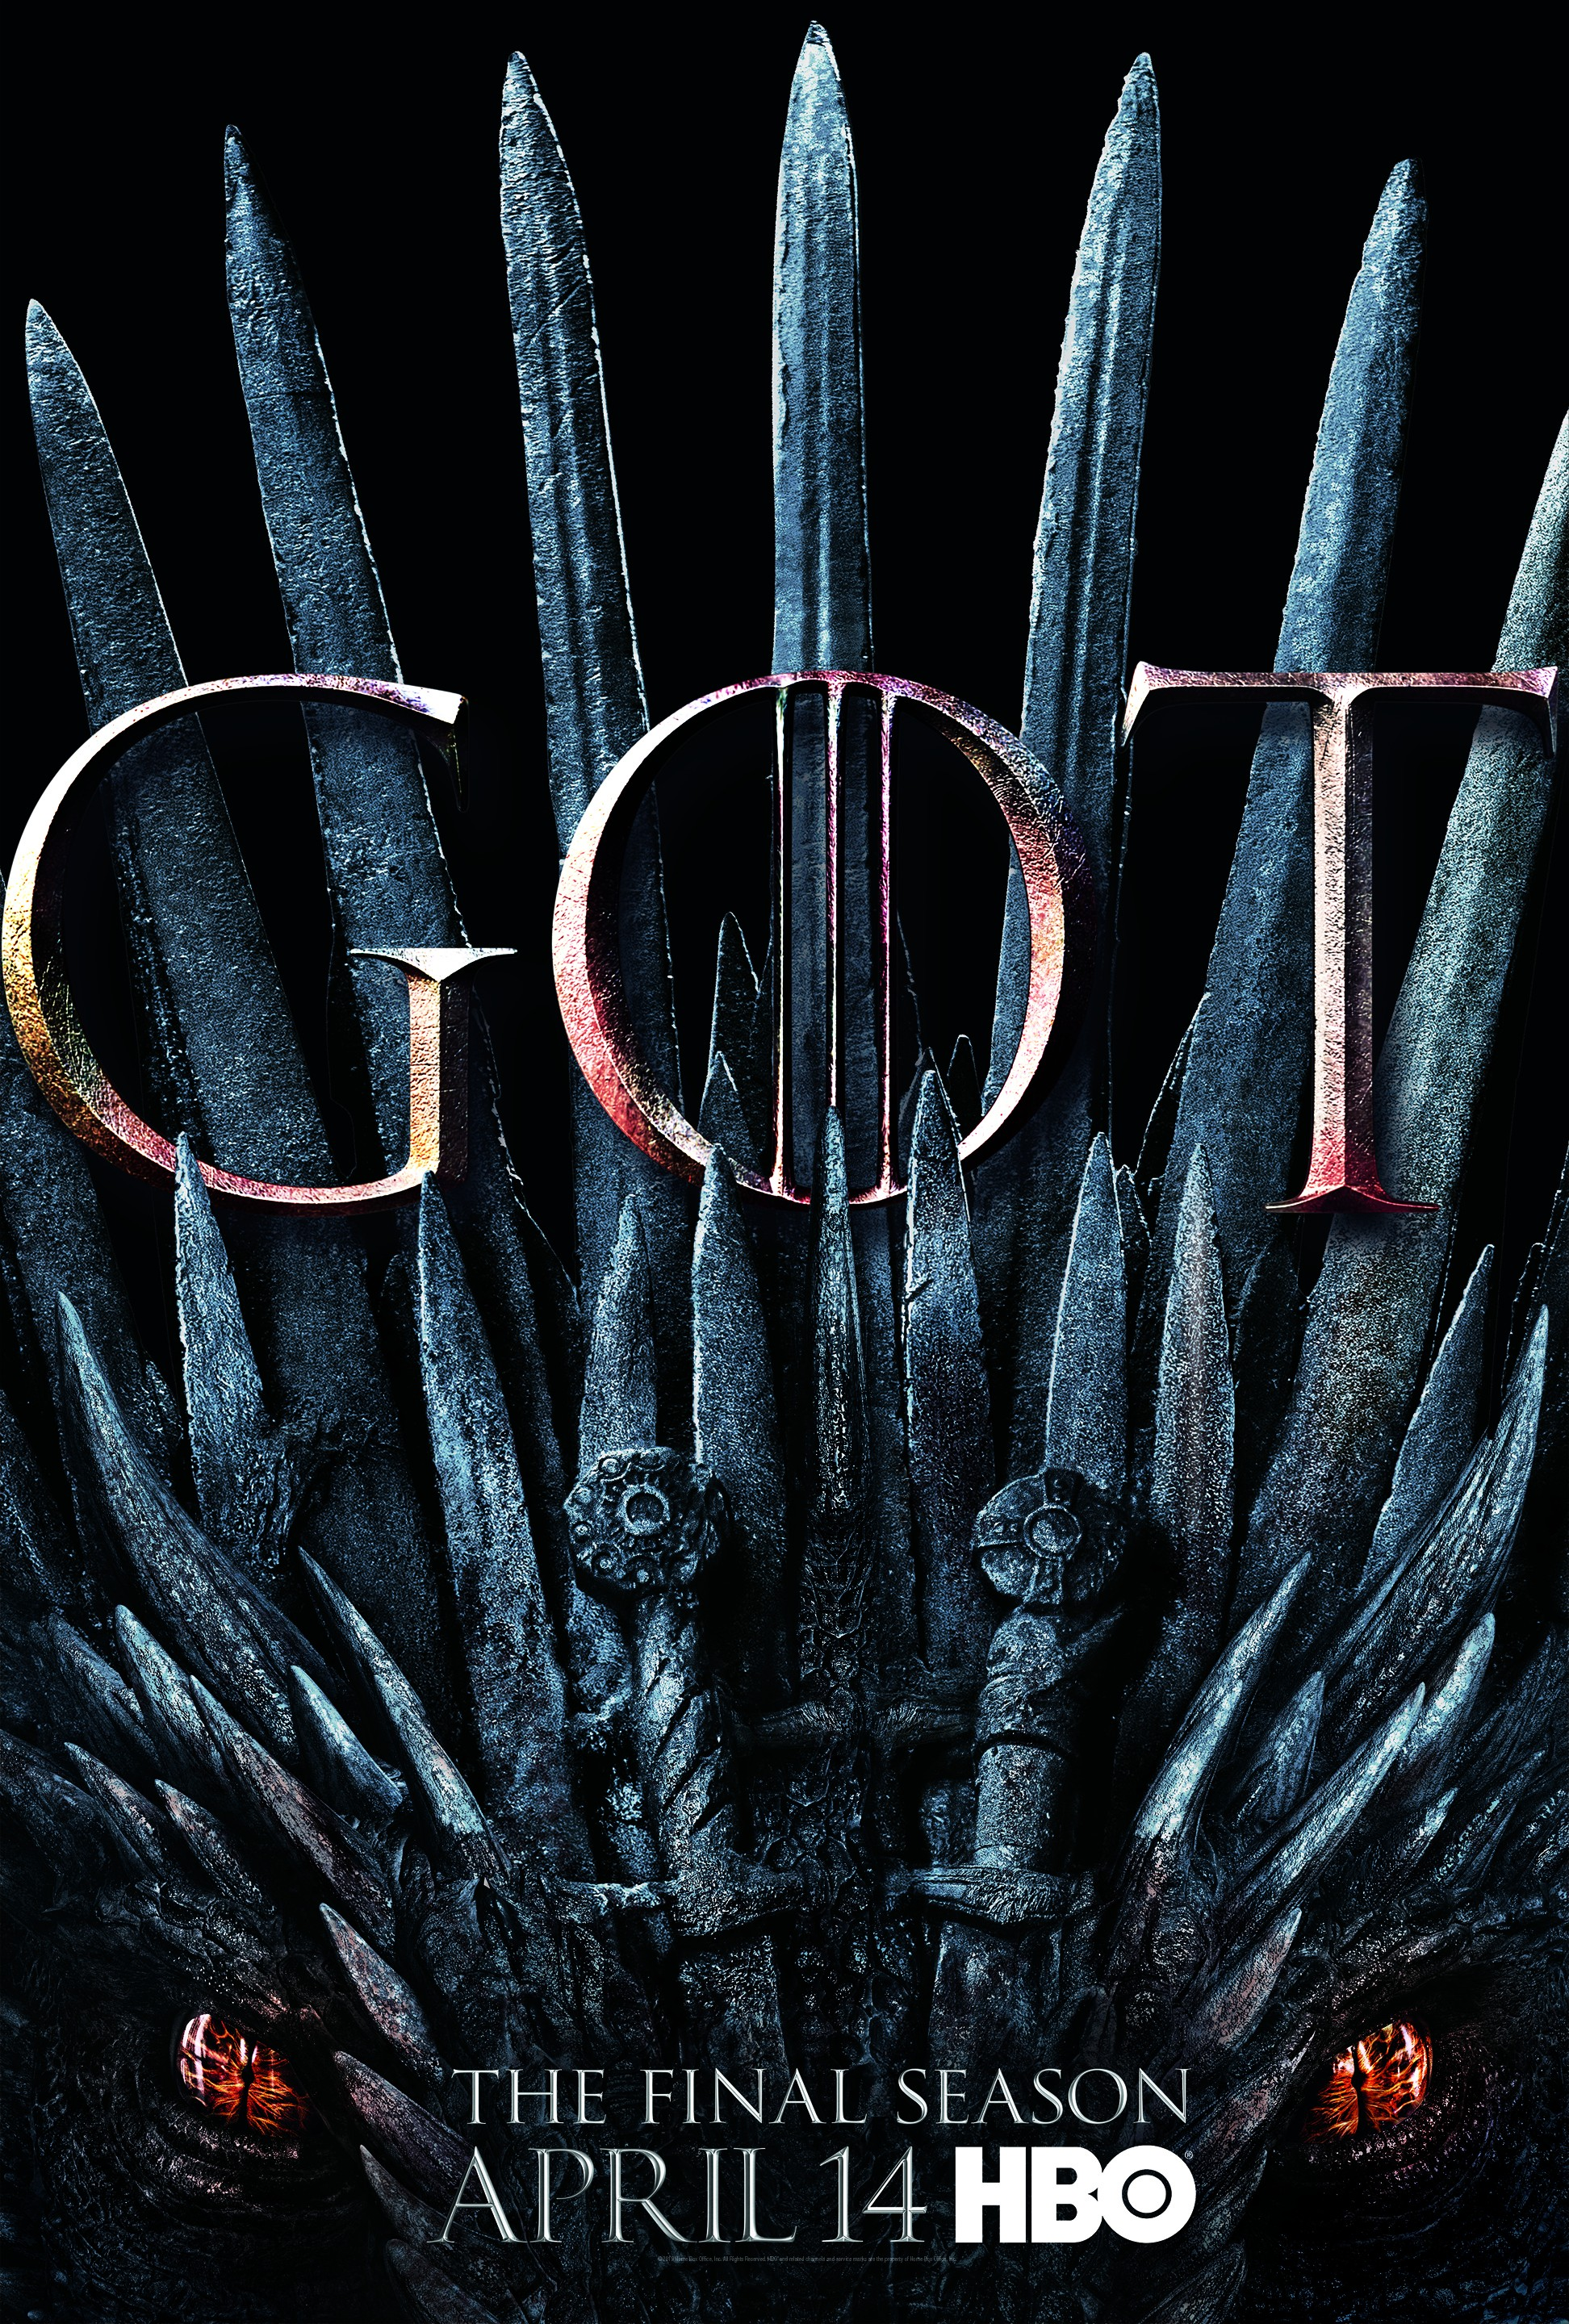 Image result for got season 8 poster